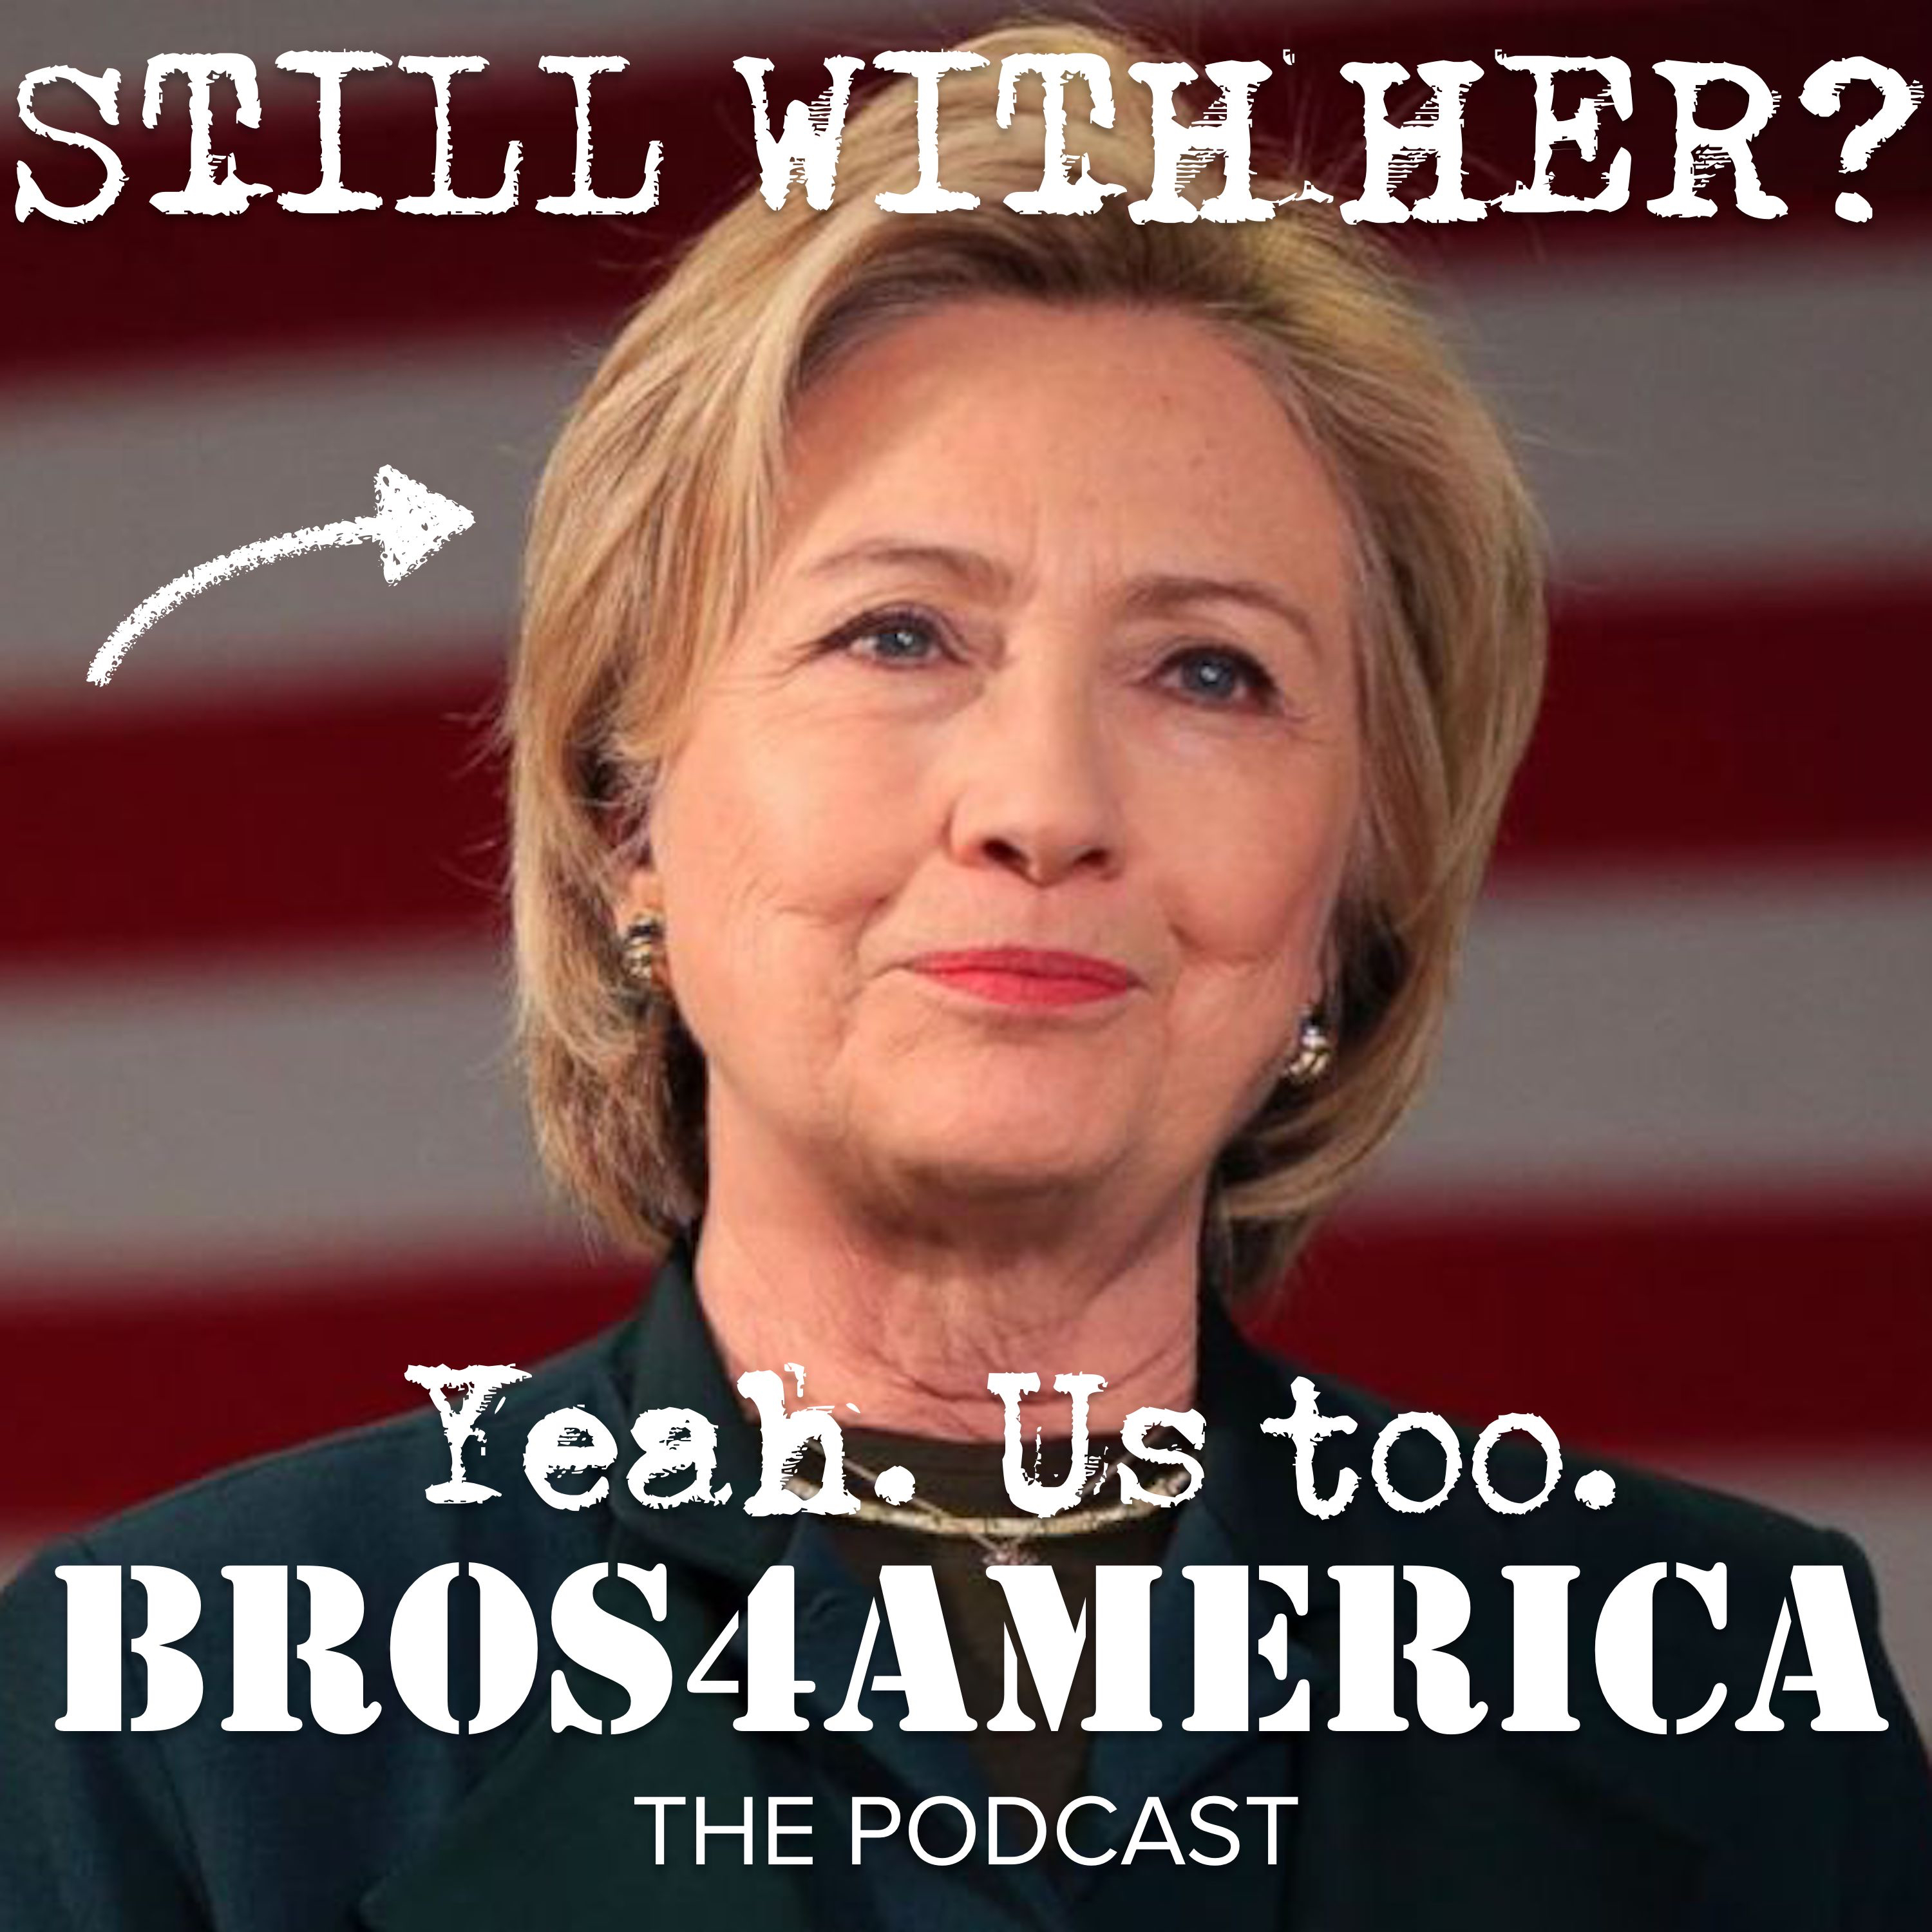 The Bros4America Podcast